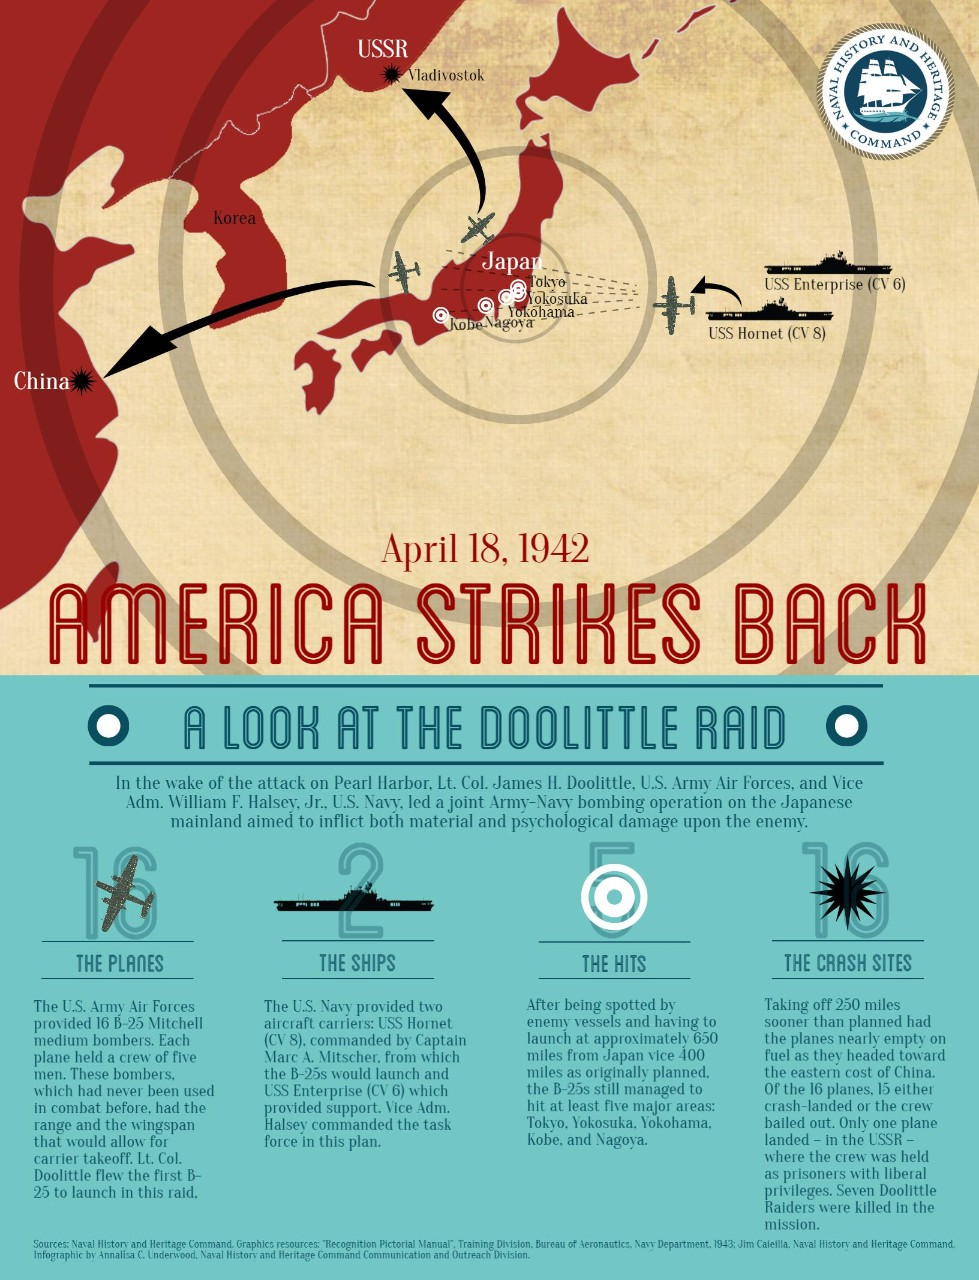 doolittle-raid-1.12.17-FINAL-2